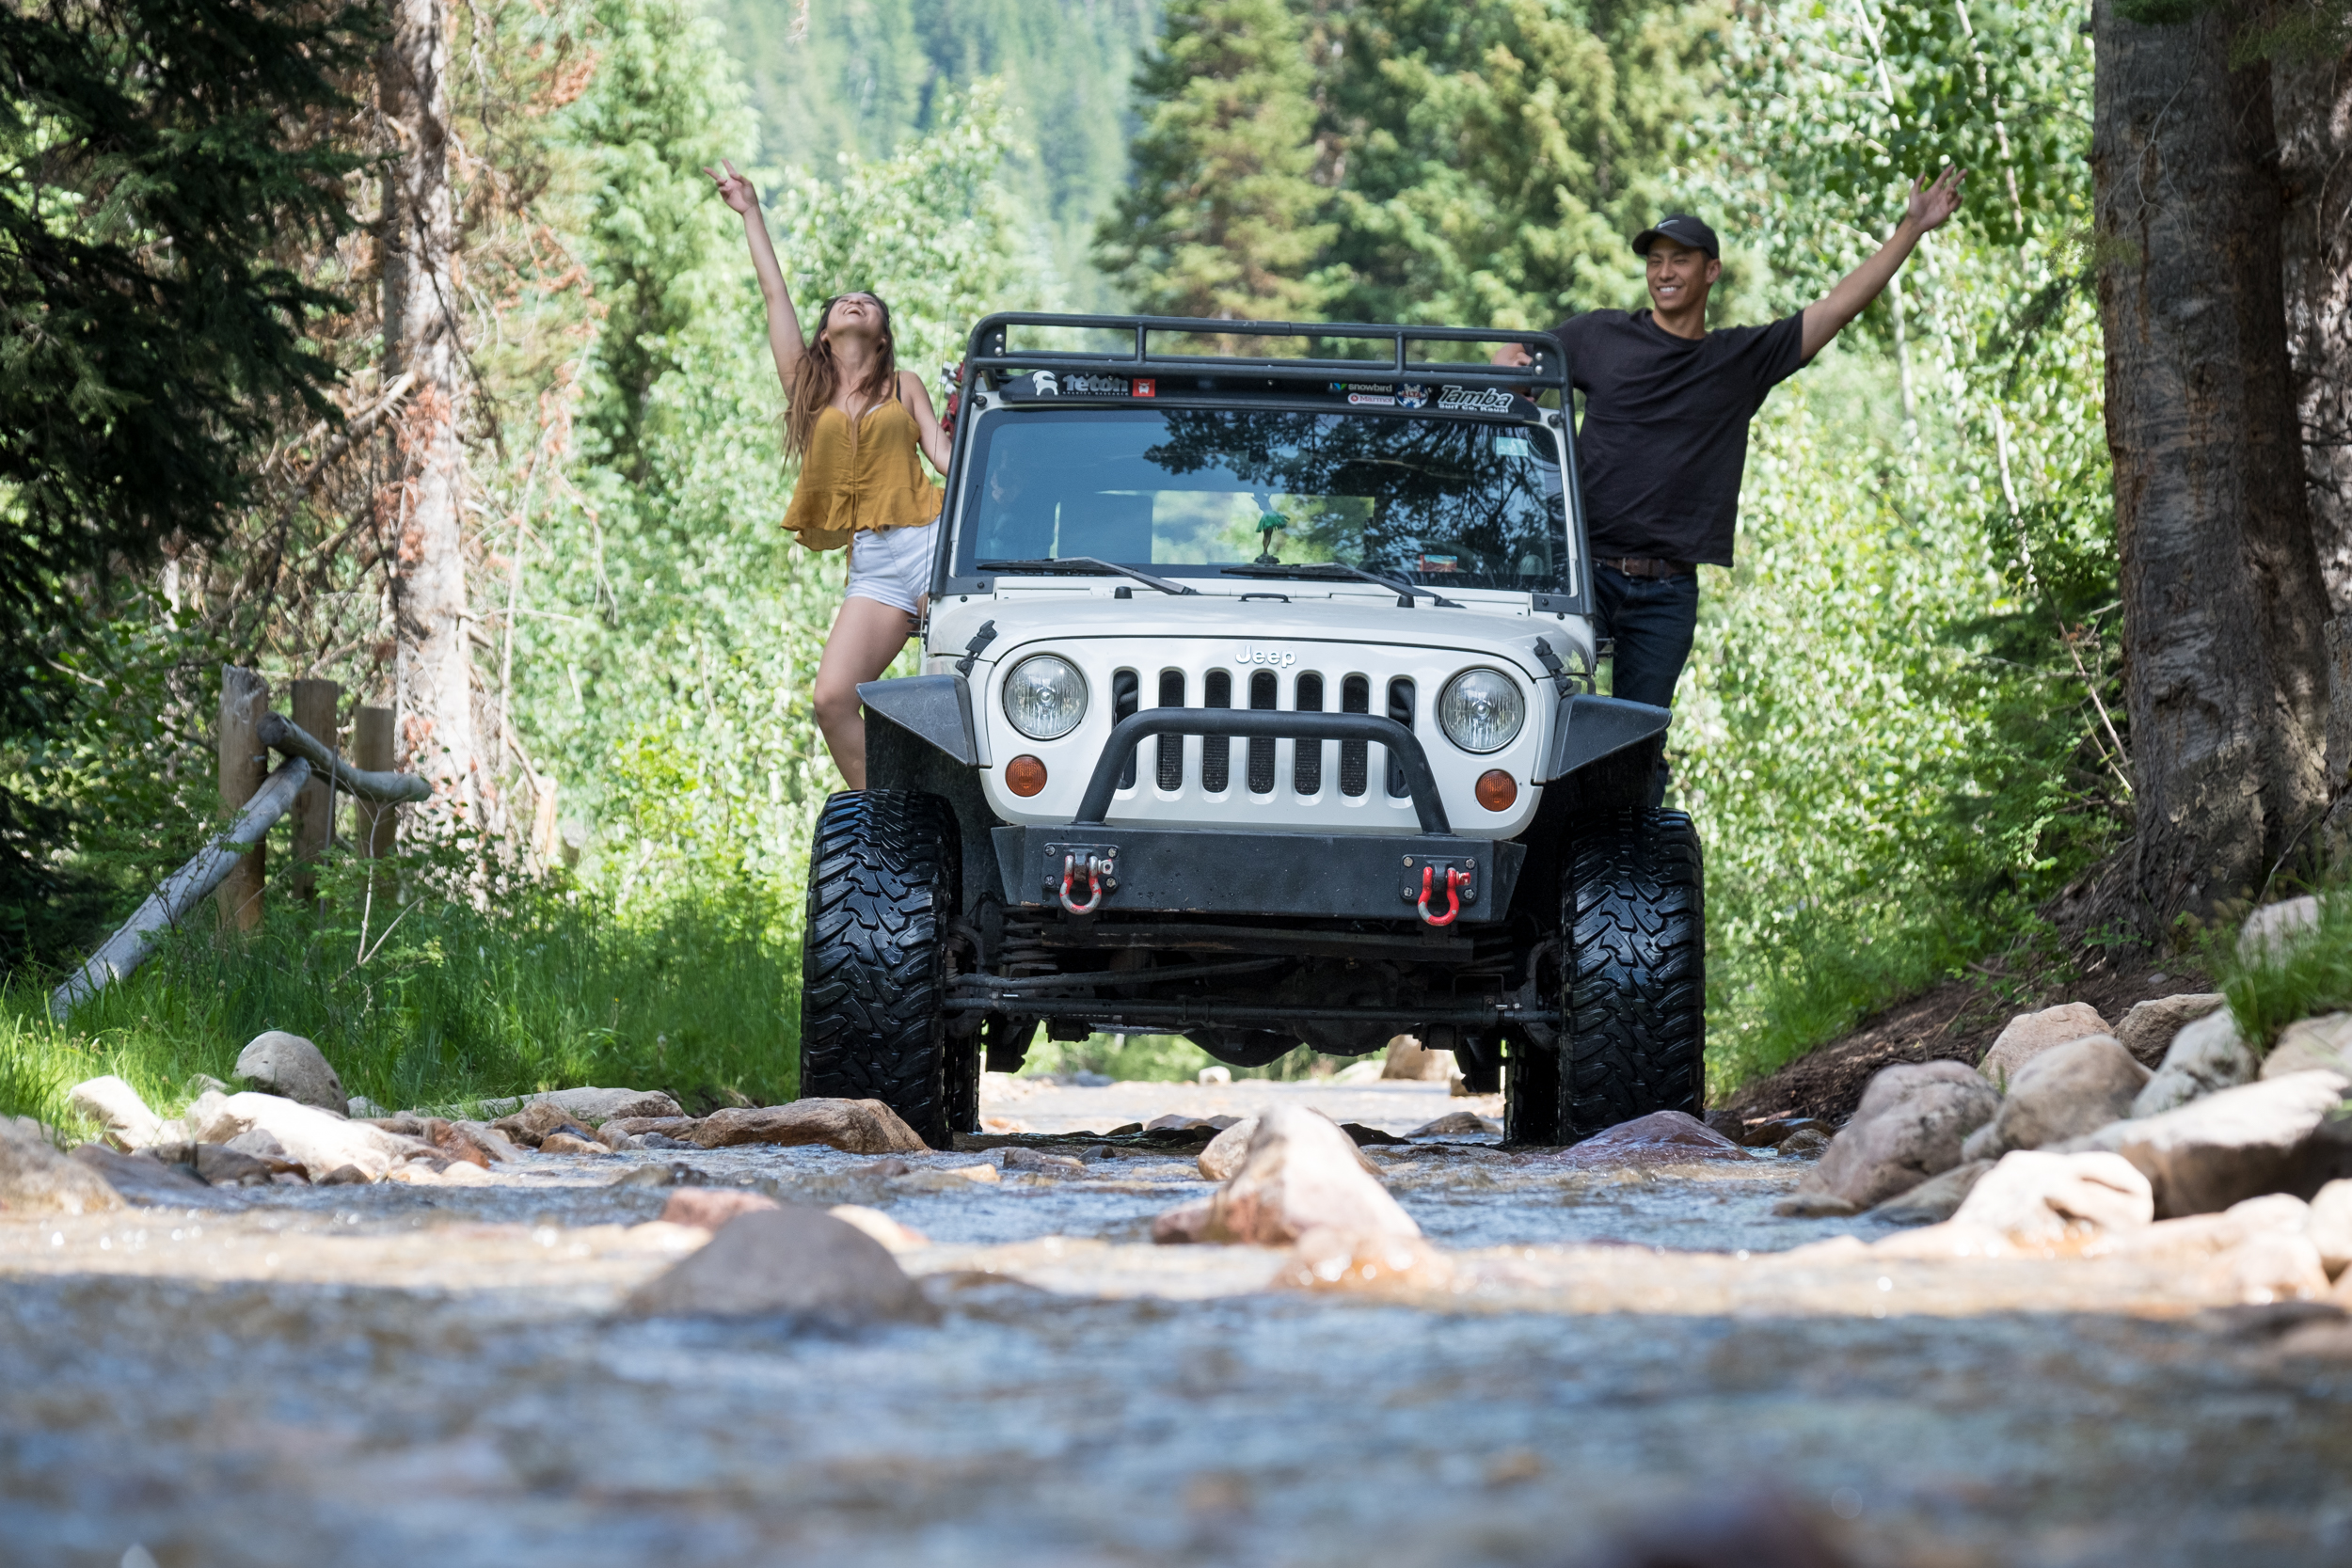 Salt_lake_city_jeep_tour 3719